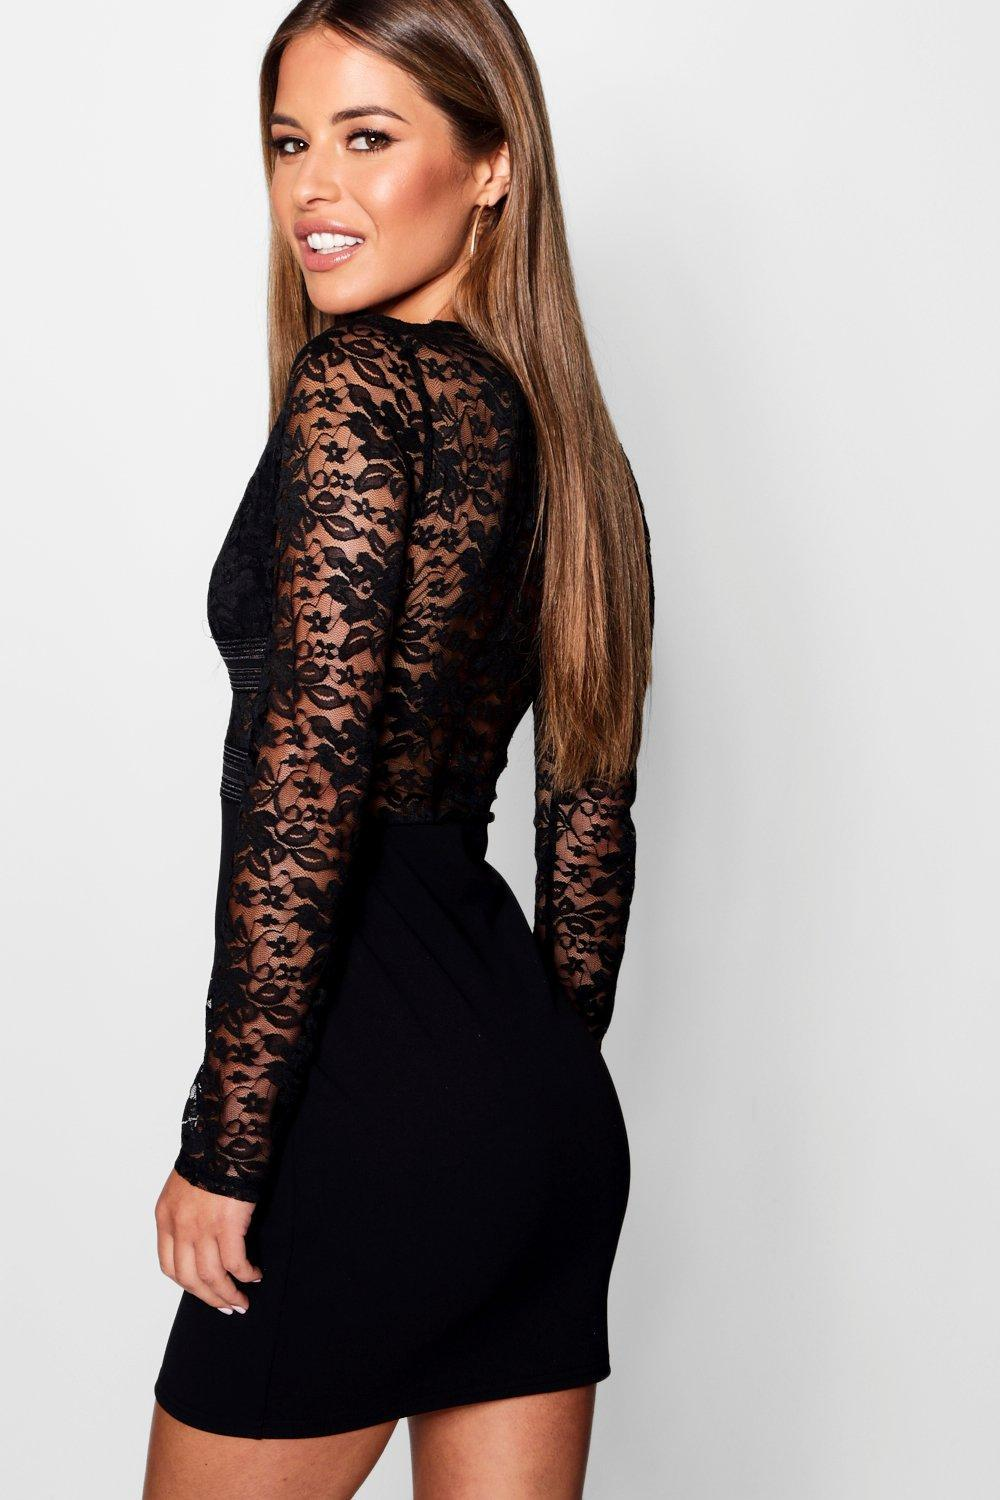 d8c30671c9 Boohoo - Black Petite Darcy Lace Trim Detail Bodycon Dress - Lyst. View  fullscreen